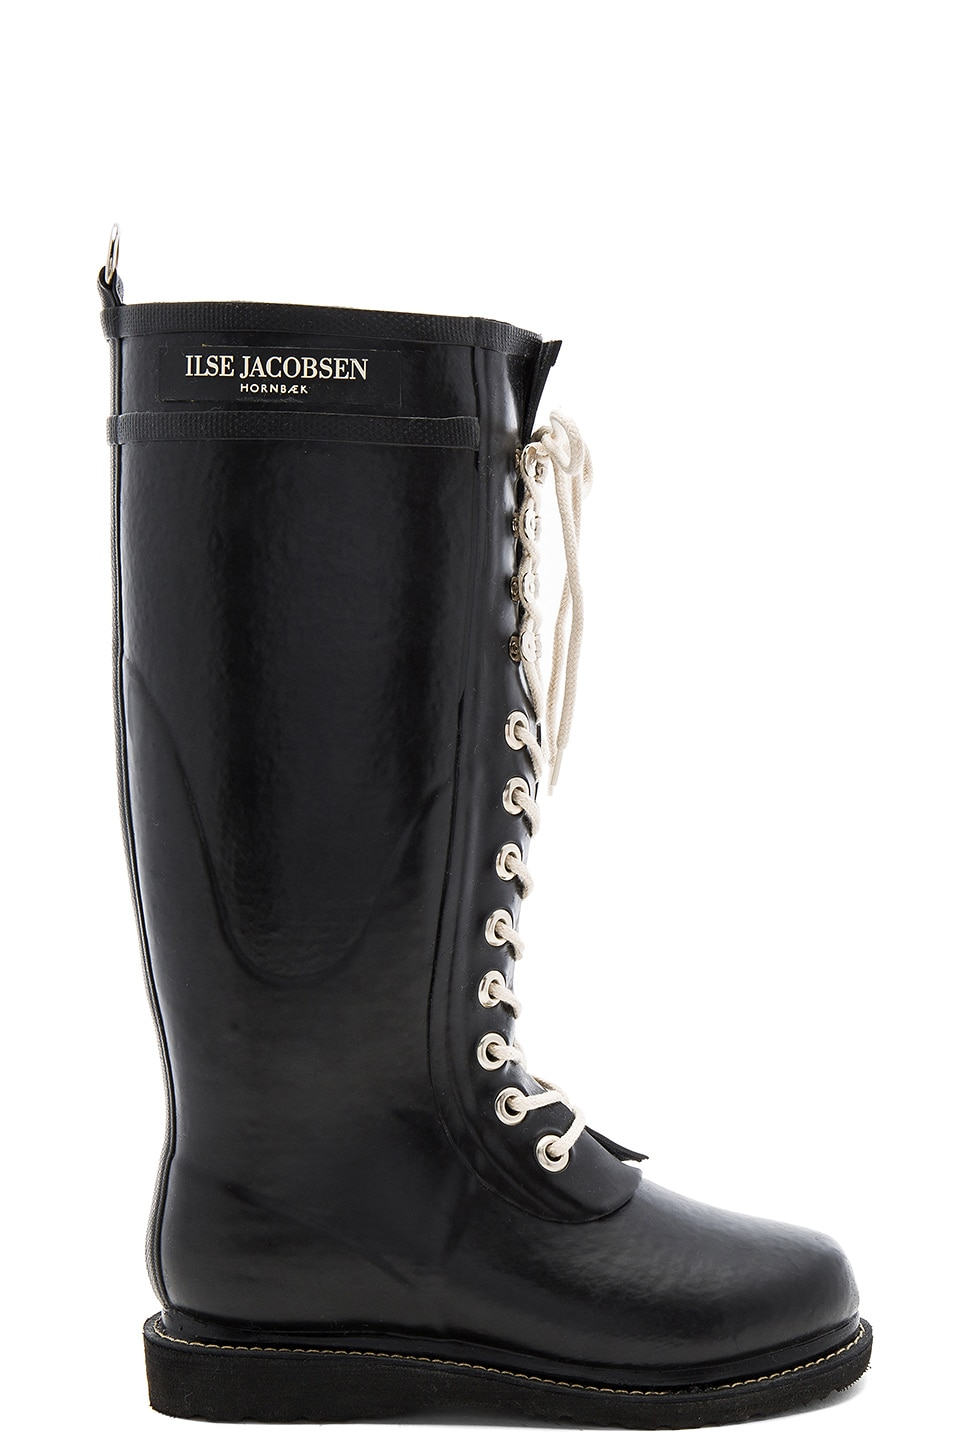 ILSE JACOBSEN Always A Classic Tall Boot in Black